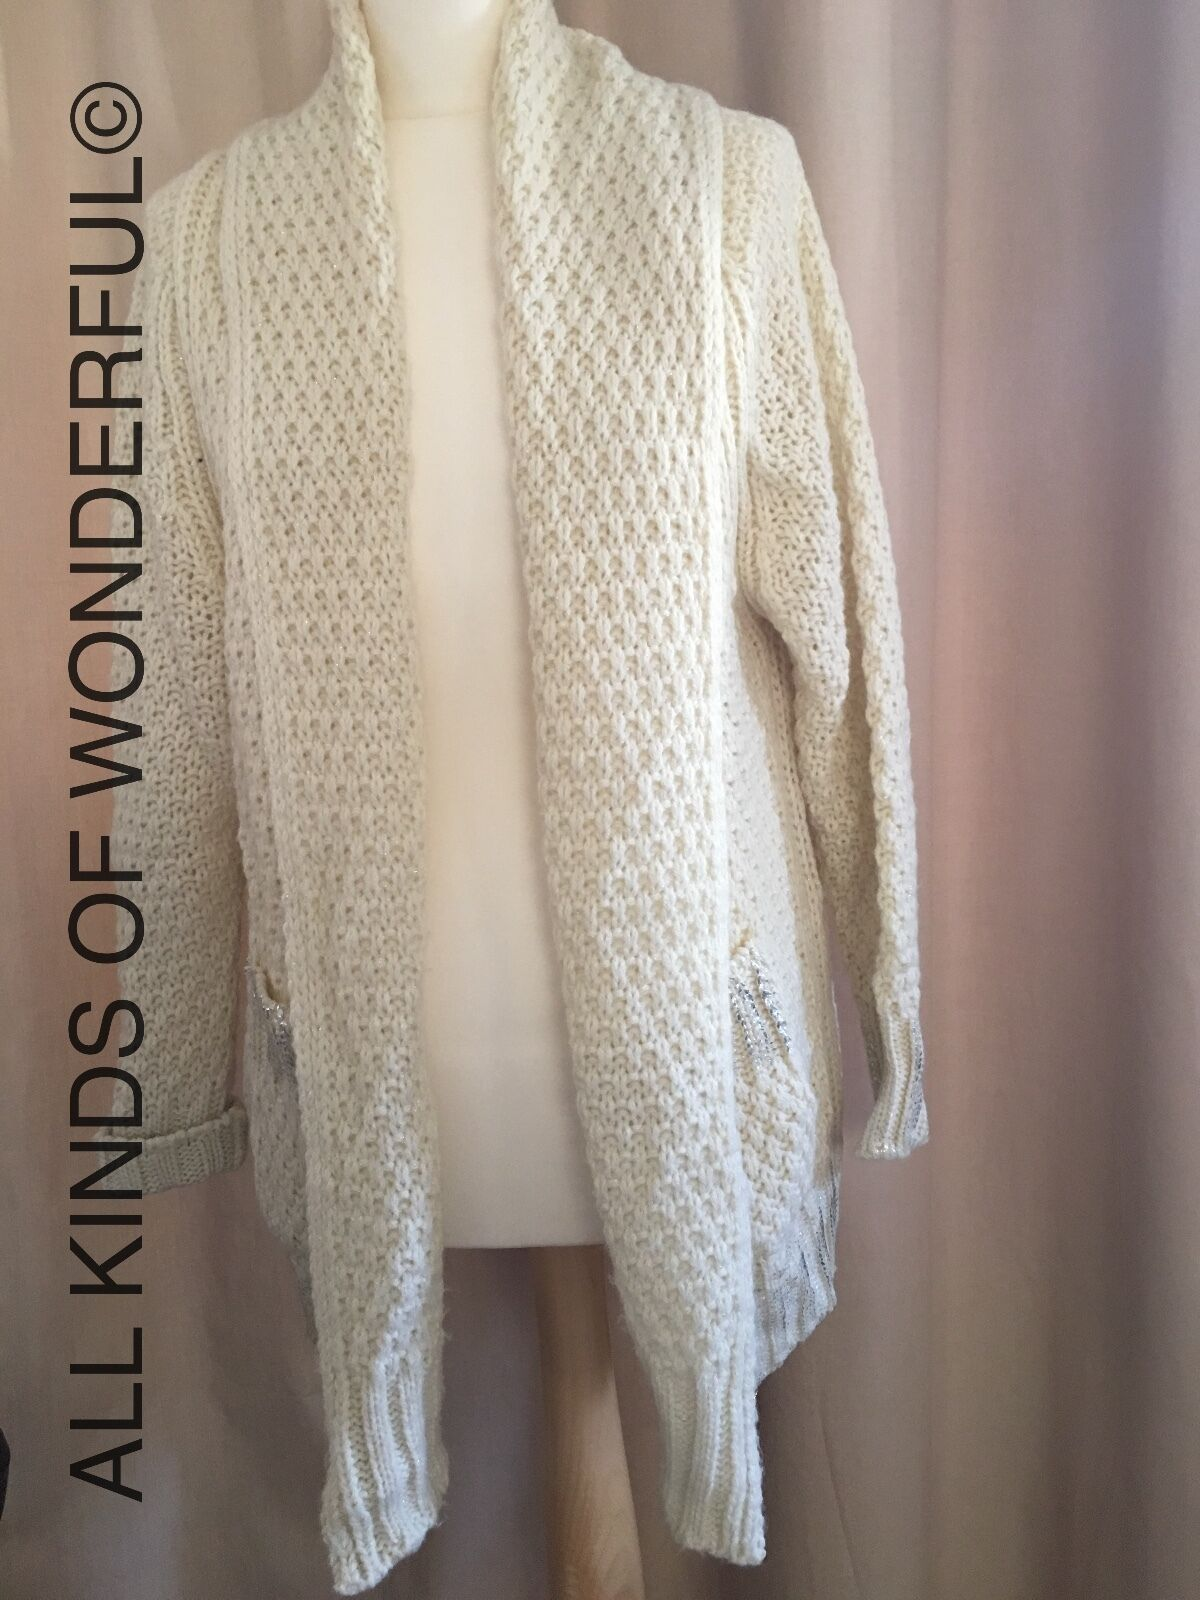 Essentiel Inspirepre Cardigan in Cream RRP  Brand New With Tags